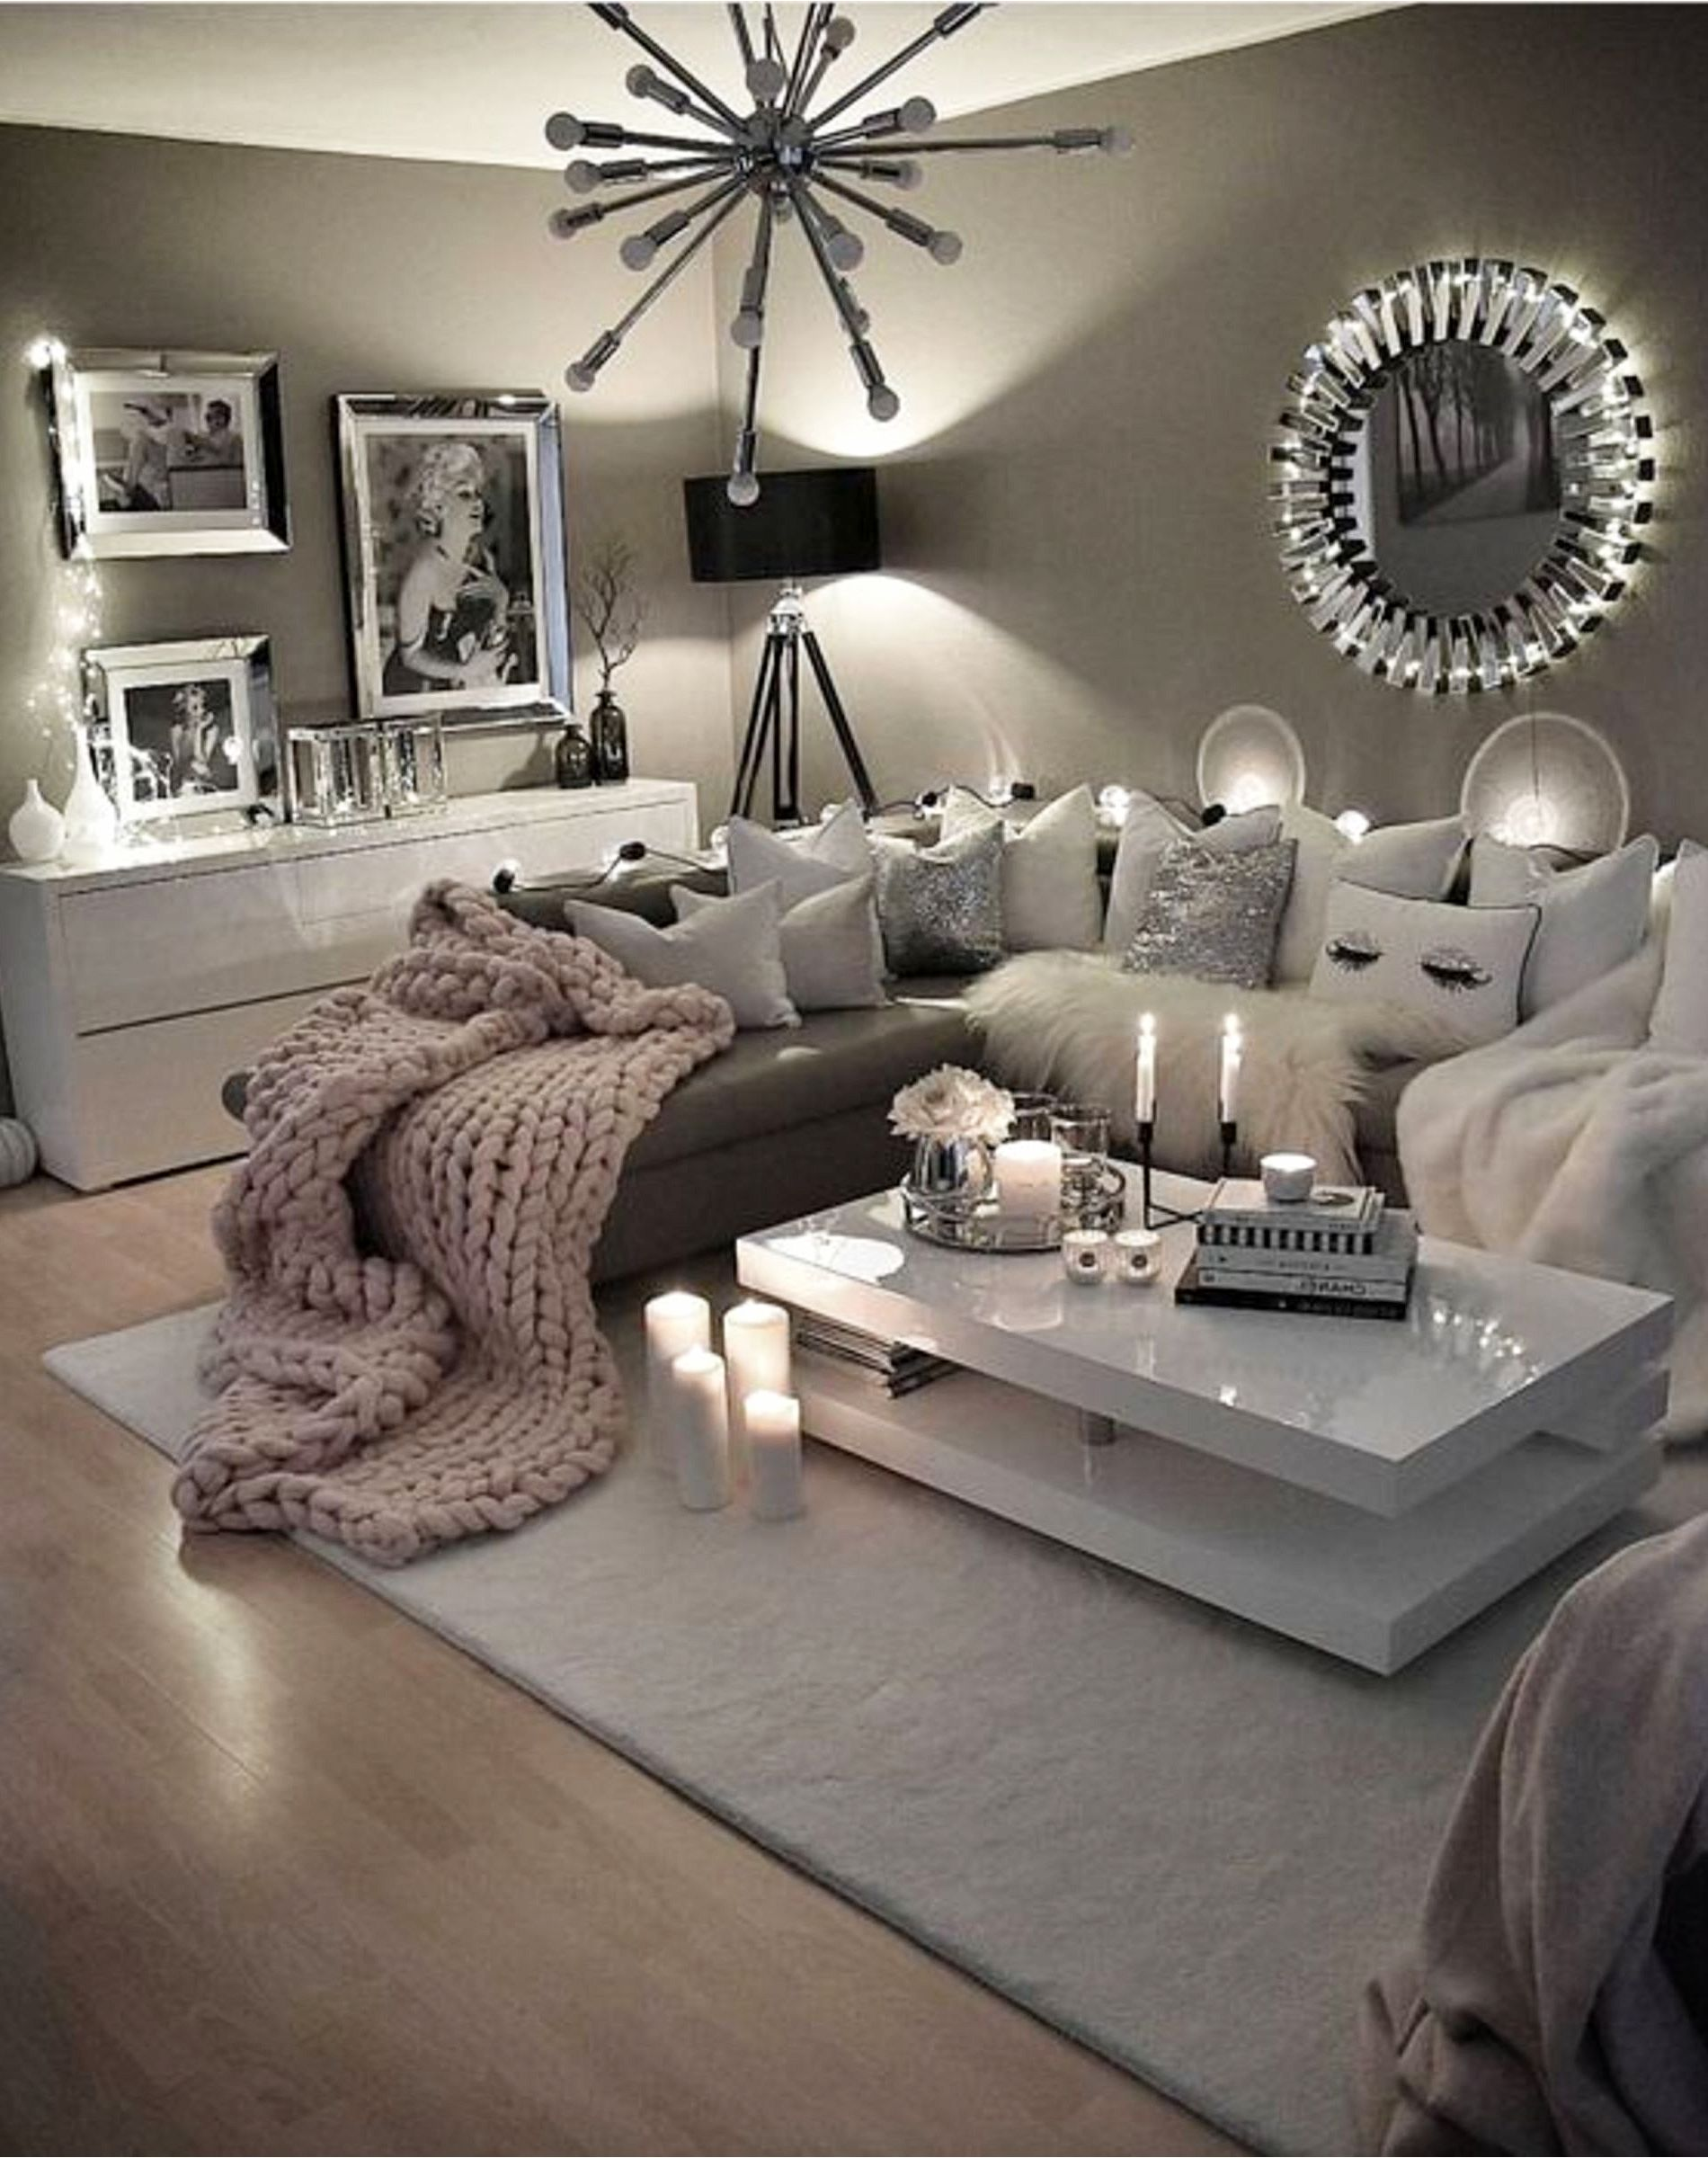 Cozy Neutral Living Room Ideas Earthy Gray Living Rooms To Copy Clever Diy Ideas Living Room Decor Gray Living Room Grey Living Room Decor Apartment